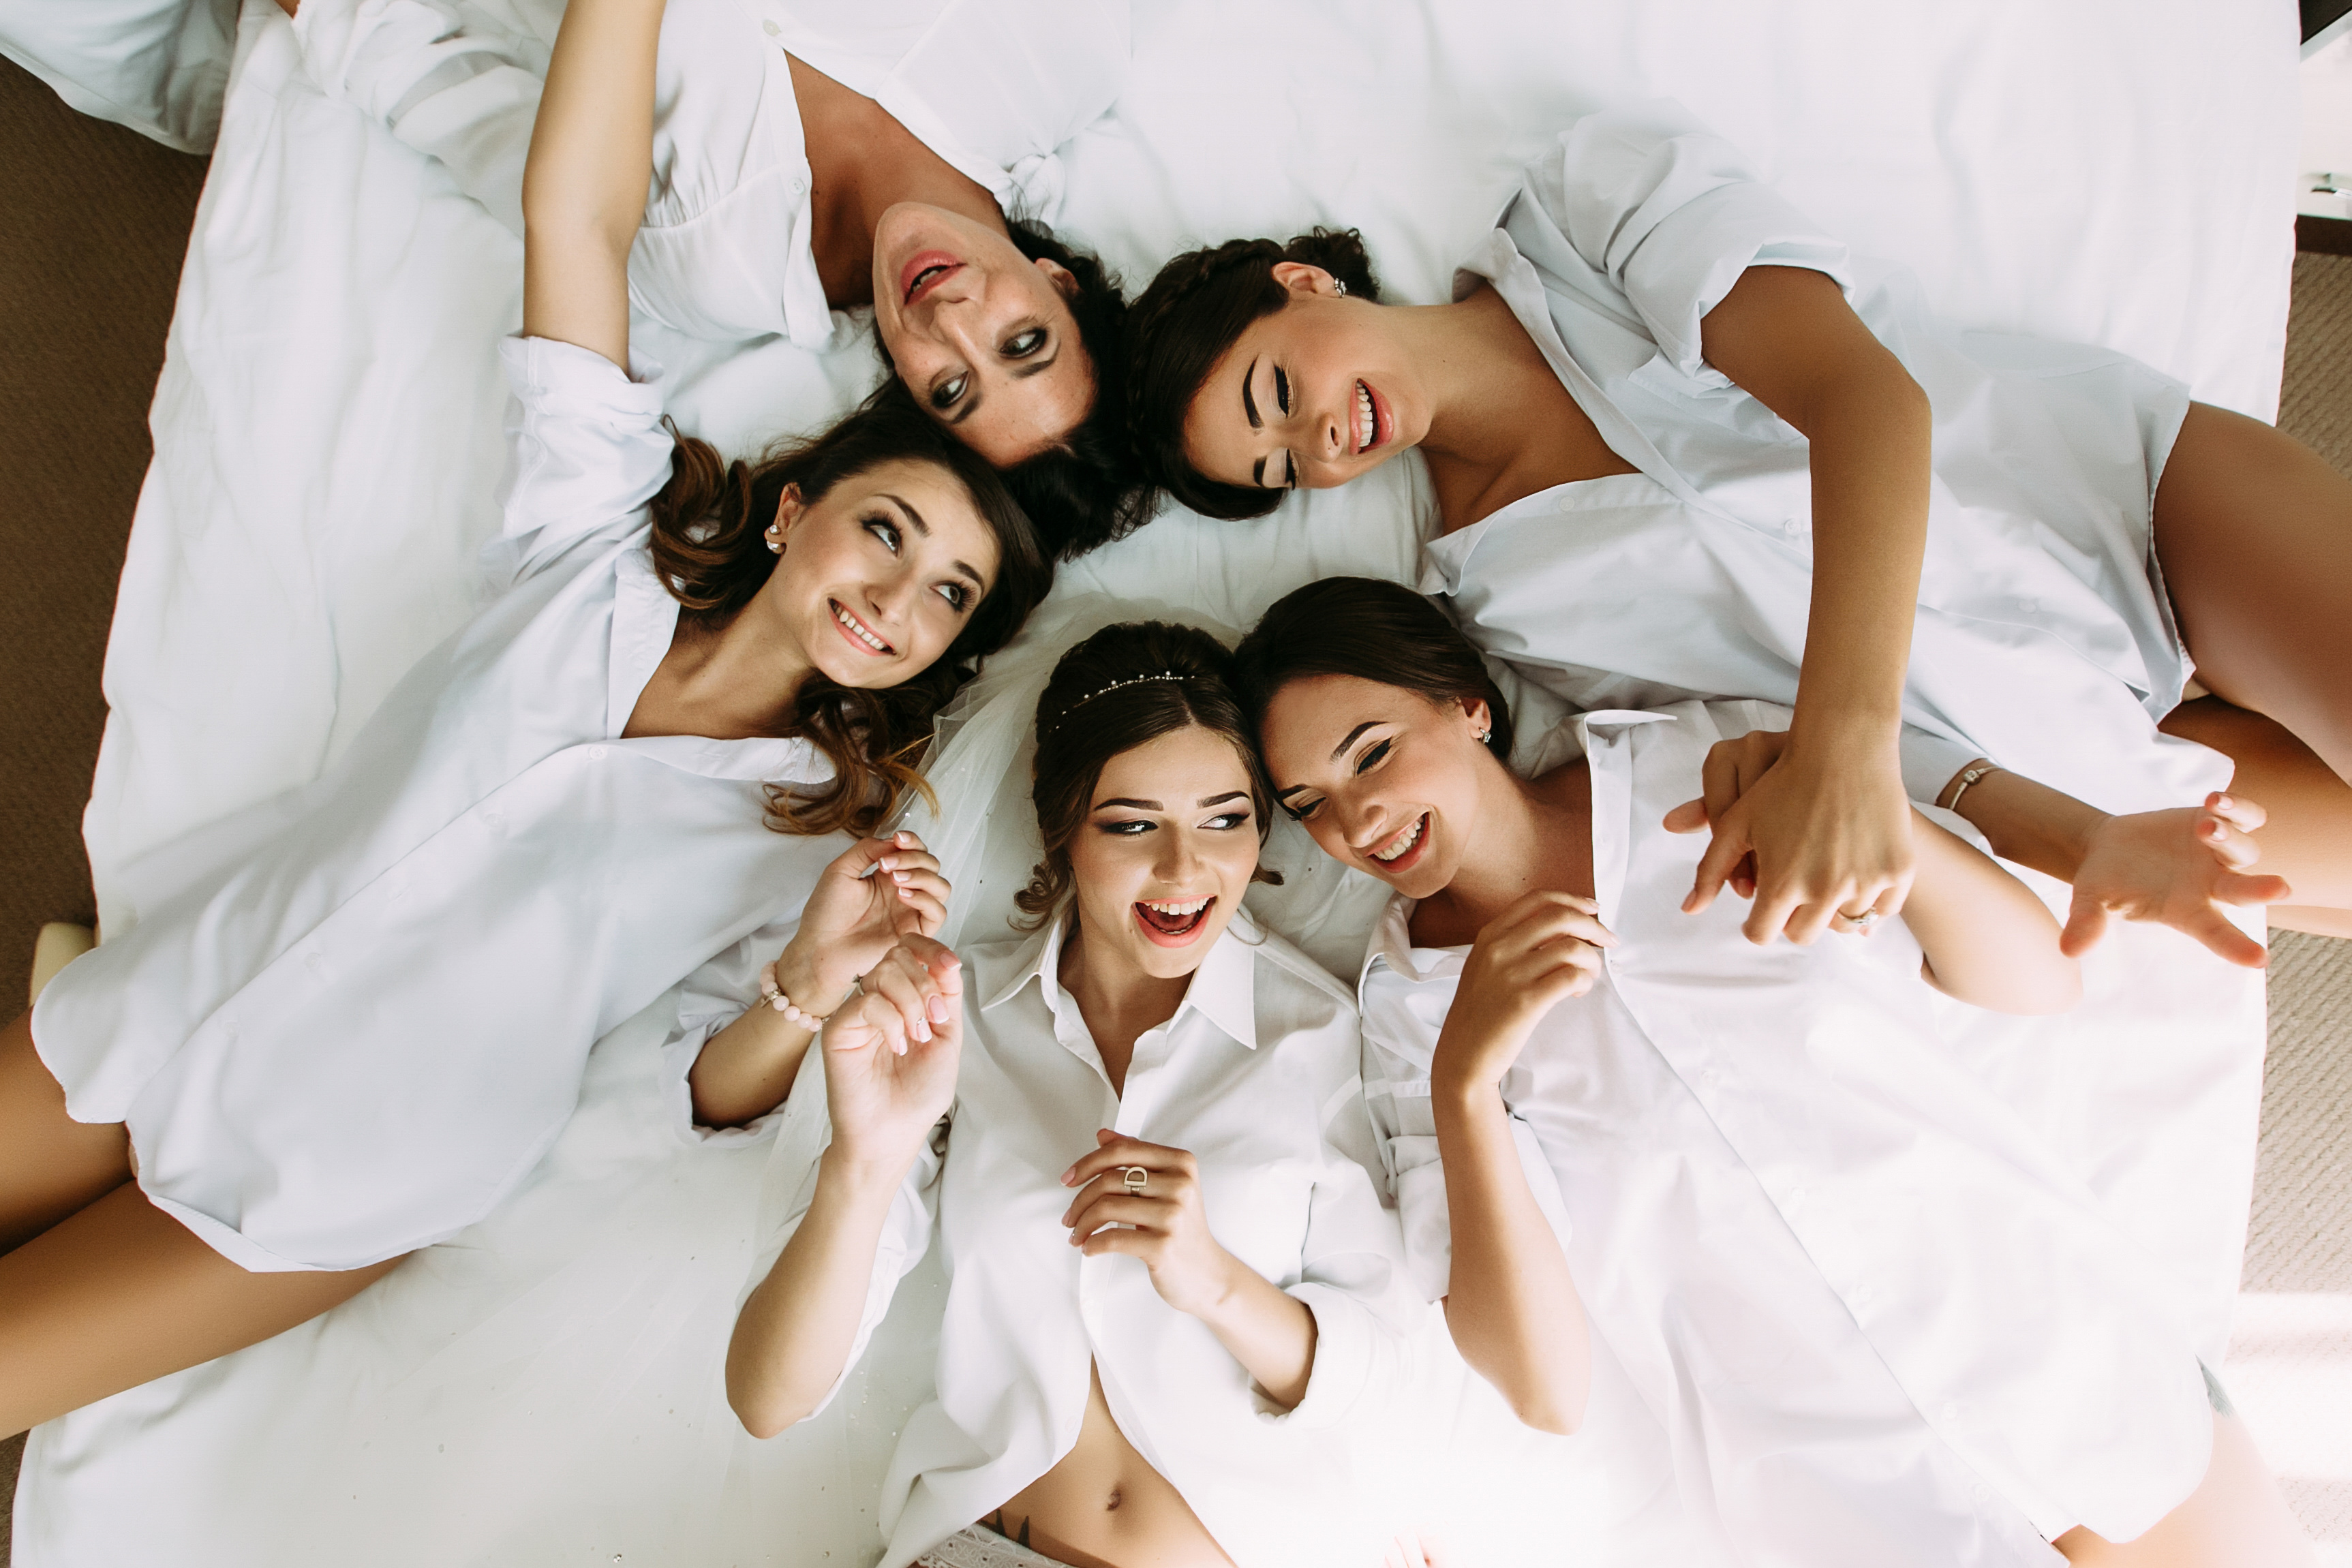 Group of women in white tops lying on a bed